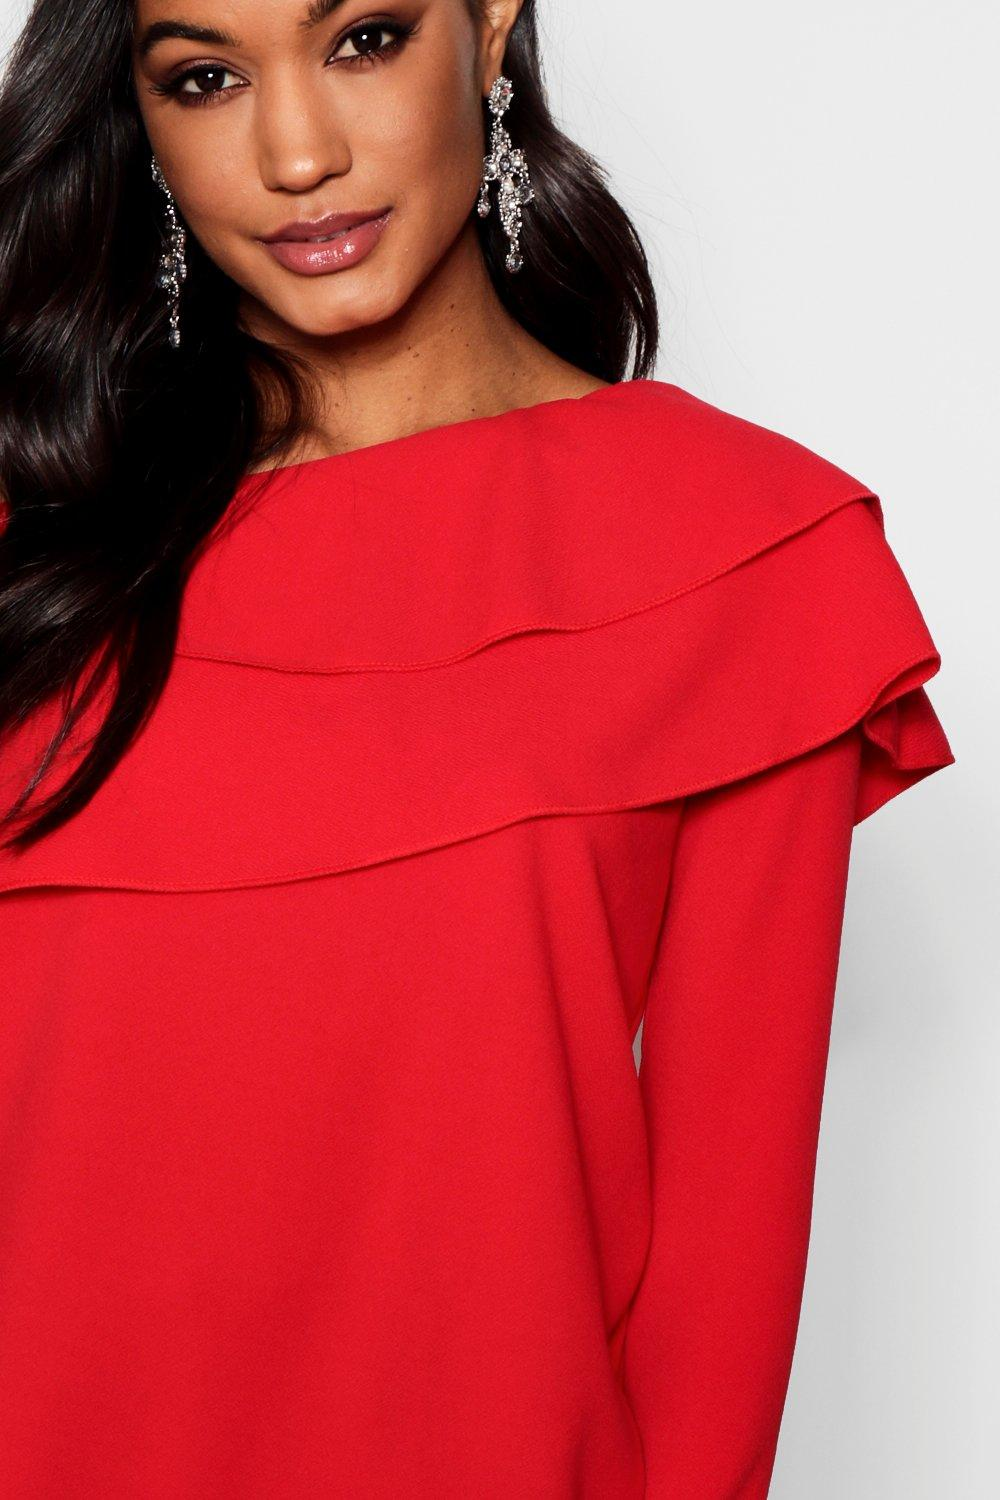 Frill One red Frill Top One Shoulder YnOZSwv5Wq